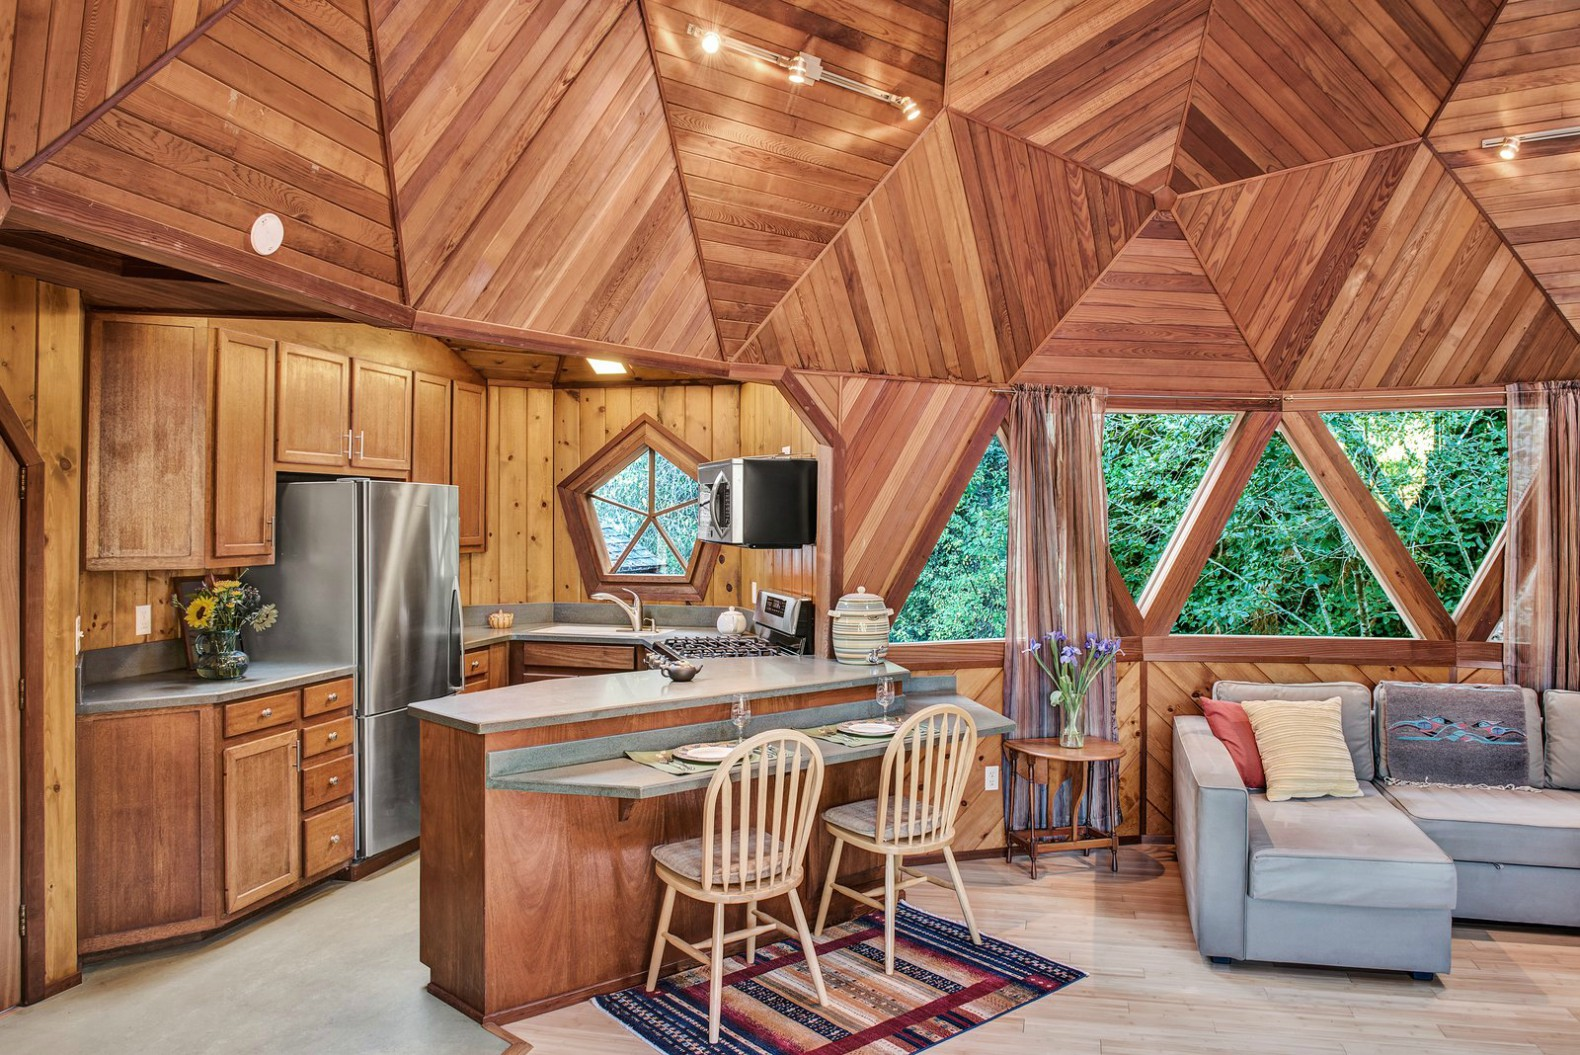 This Incredible Geodesic Dome Home Could Be Yours For 475k